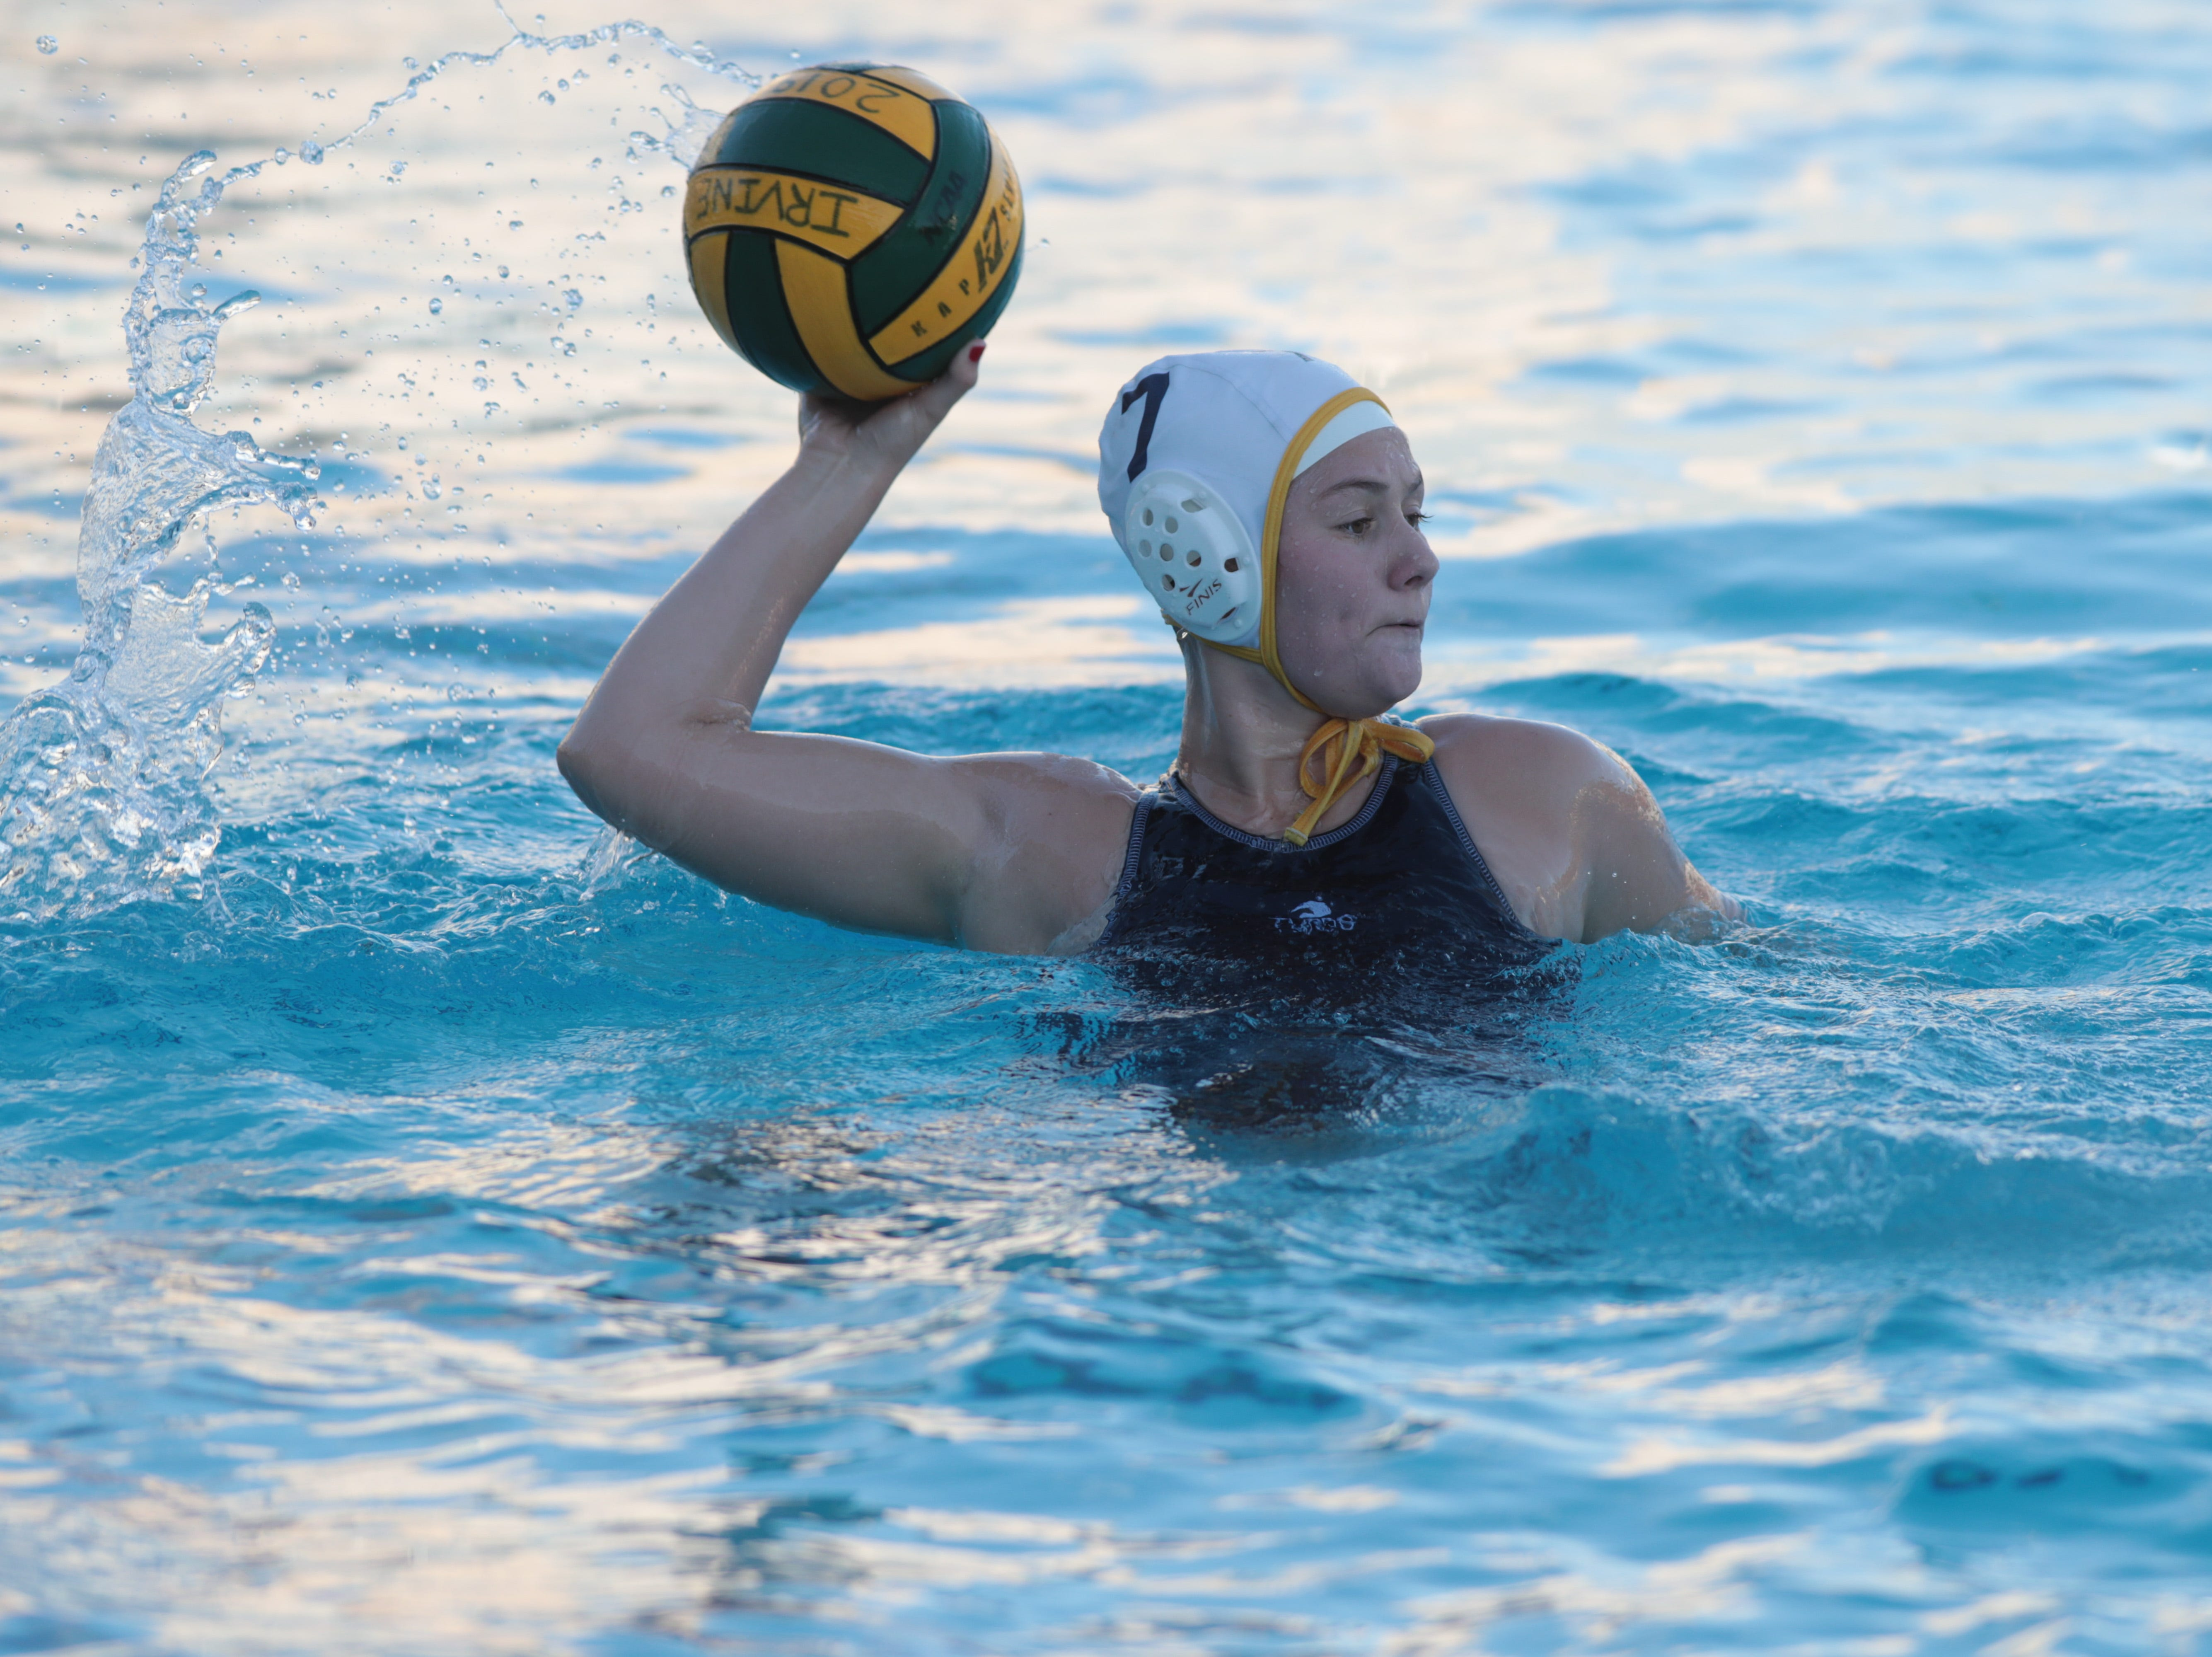 Lauren Olivier plays for La Quinta water polo at the CIF Southern Section Division 4 championships, Irvine, Calif., Saturday, February 16, 2019.